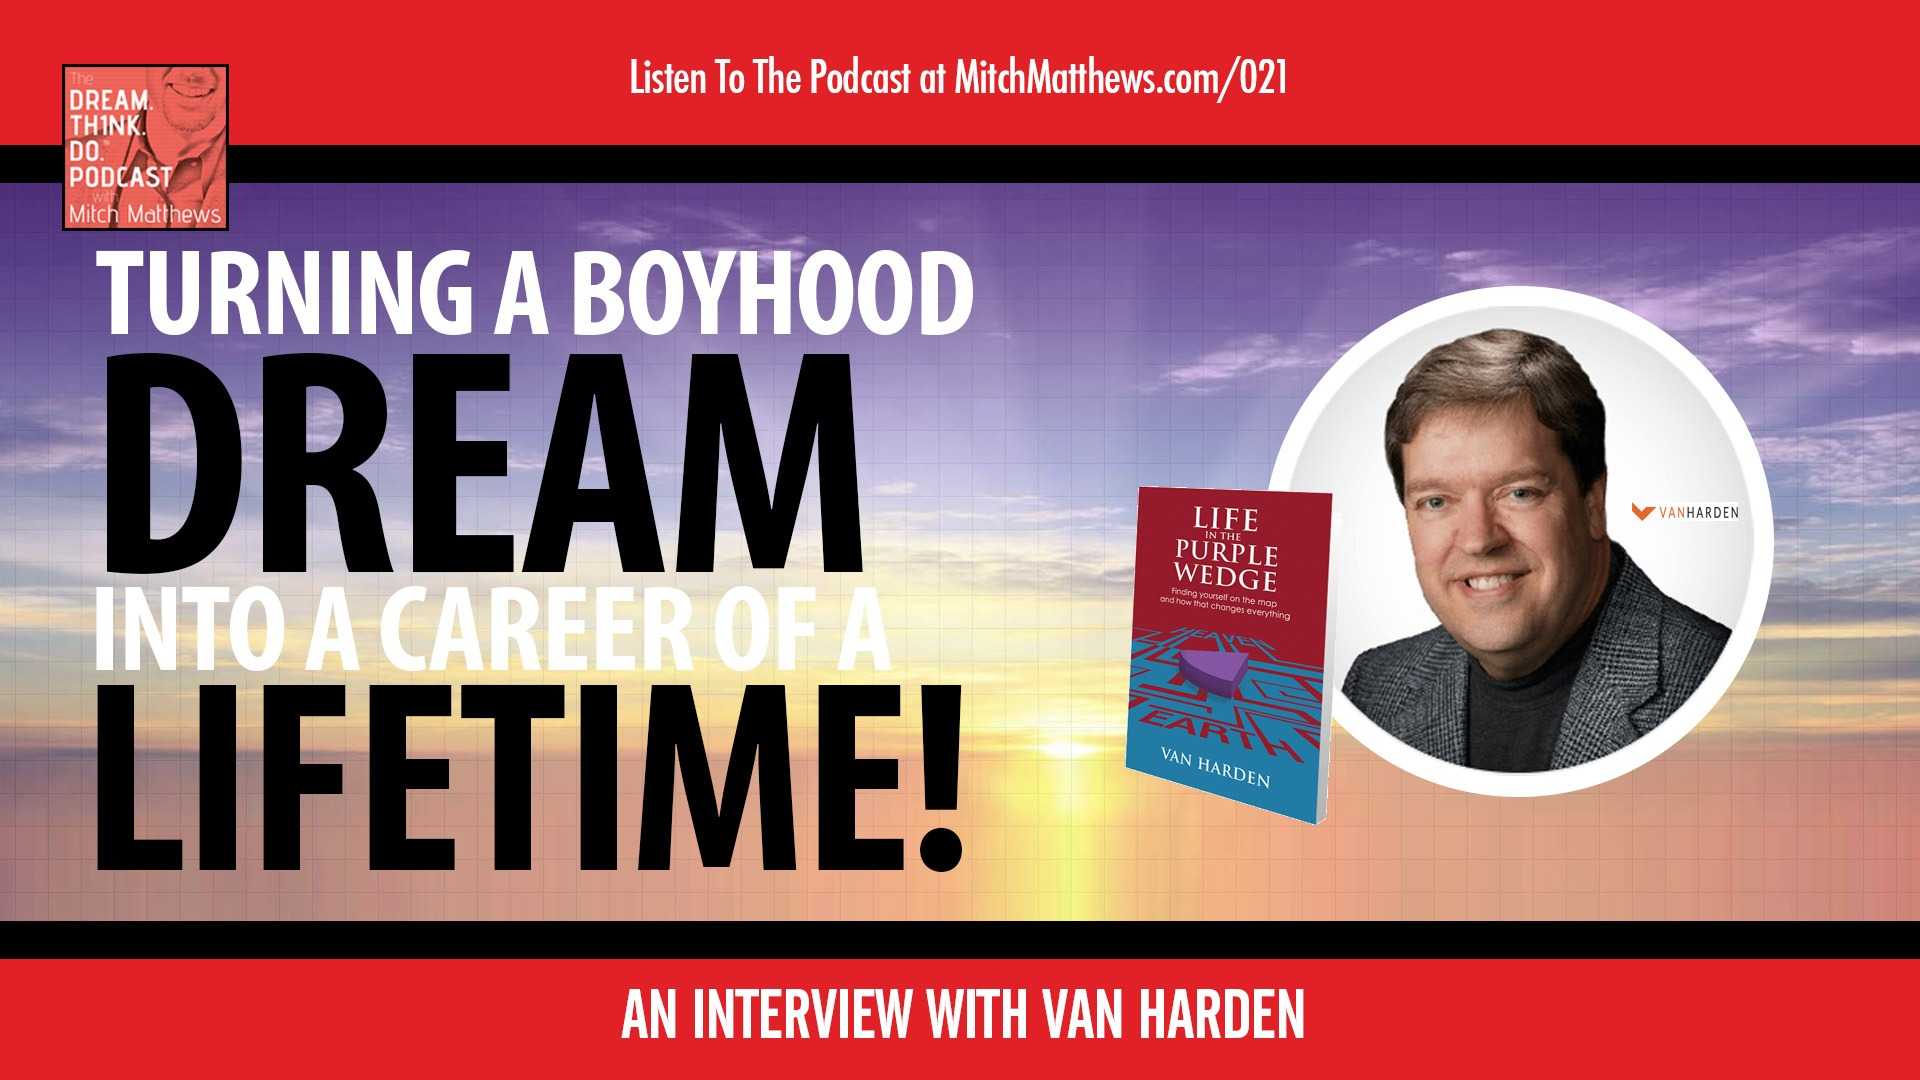 Turning-a-Boyhood-Dream-Into-a-Career-of-a-Lifetime!-_-An-Interview-with-Van-Harden